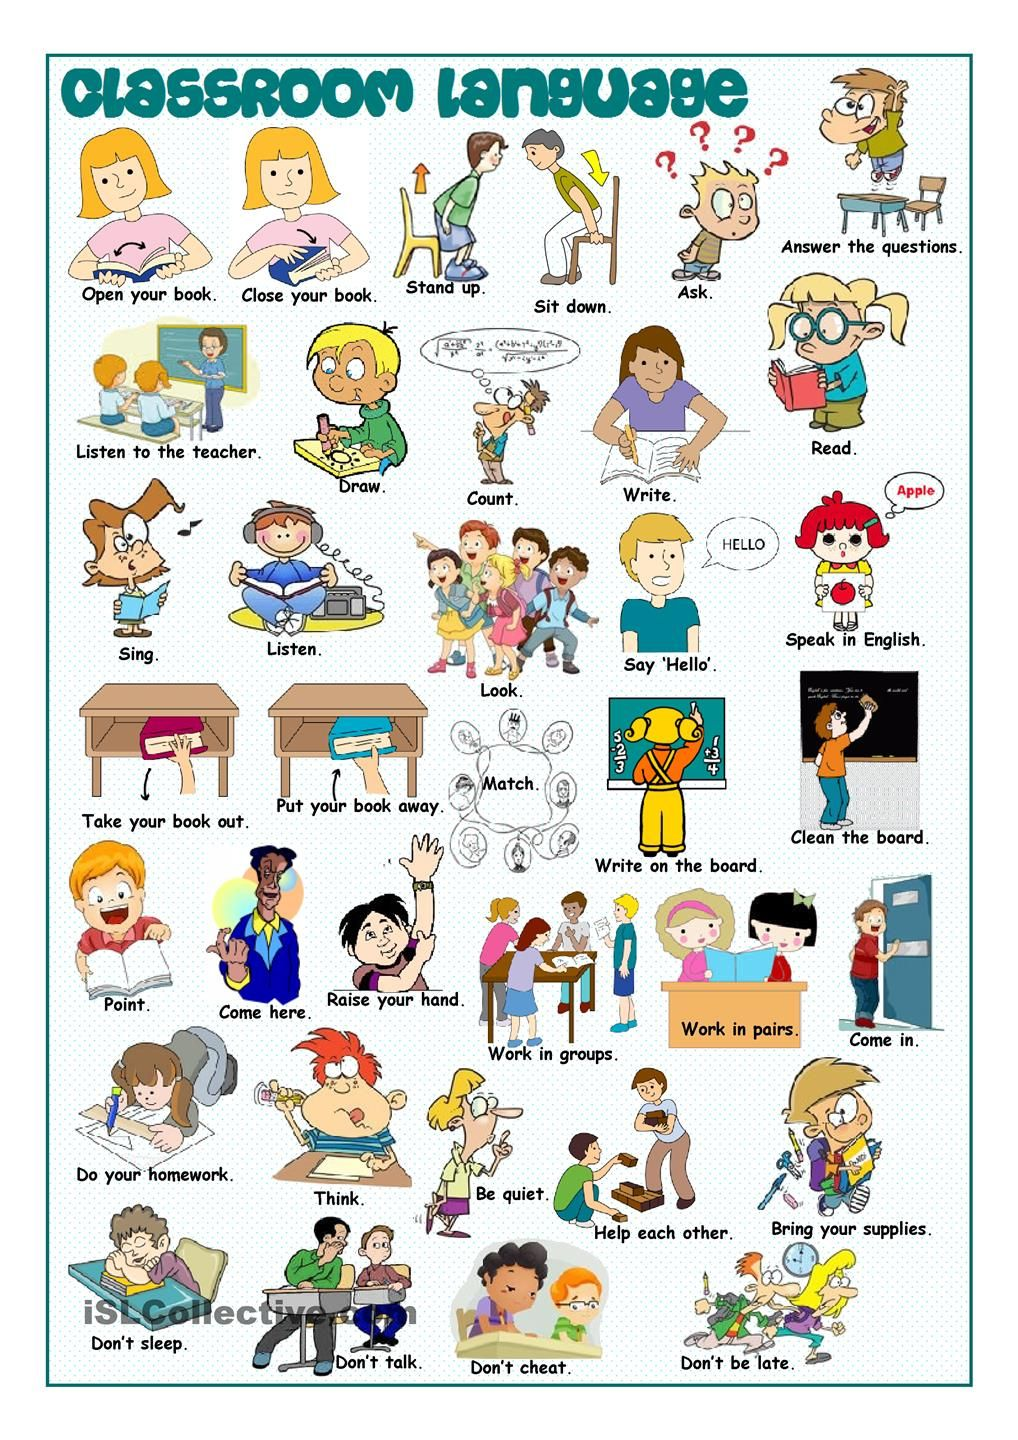 Classroom Language Picture Dictionary … | Pinteres…